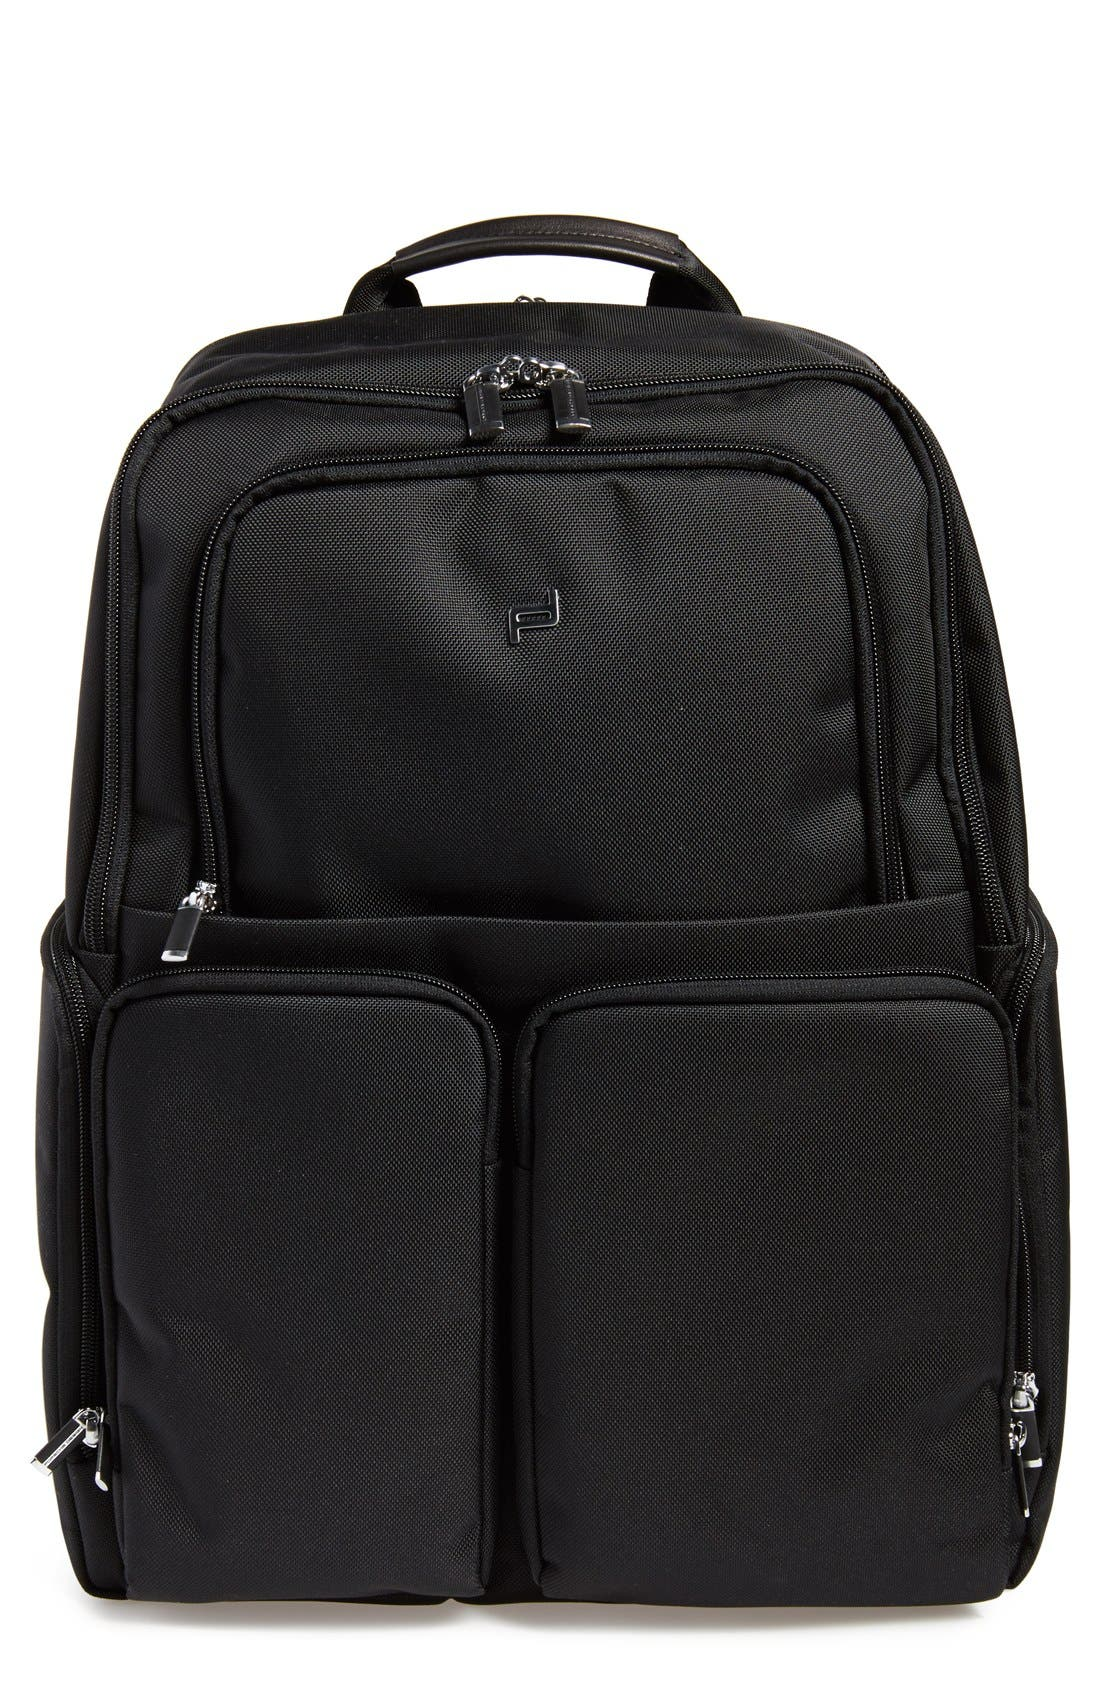 PORSCHE DESIGN Roadster 3.0 Backpack